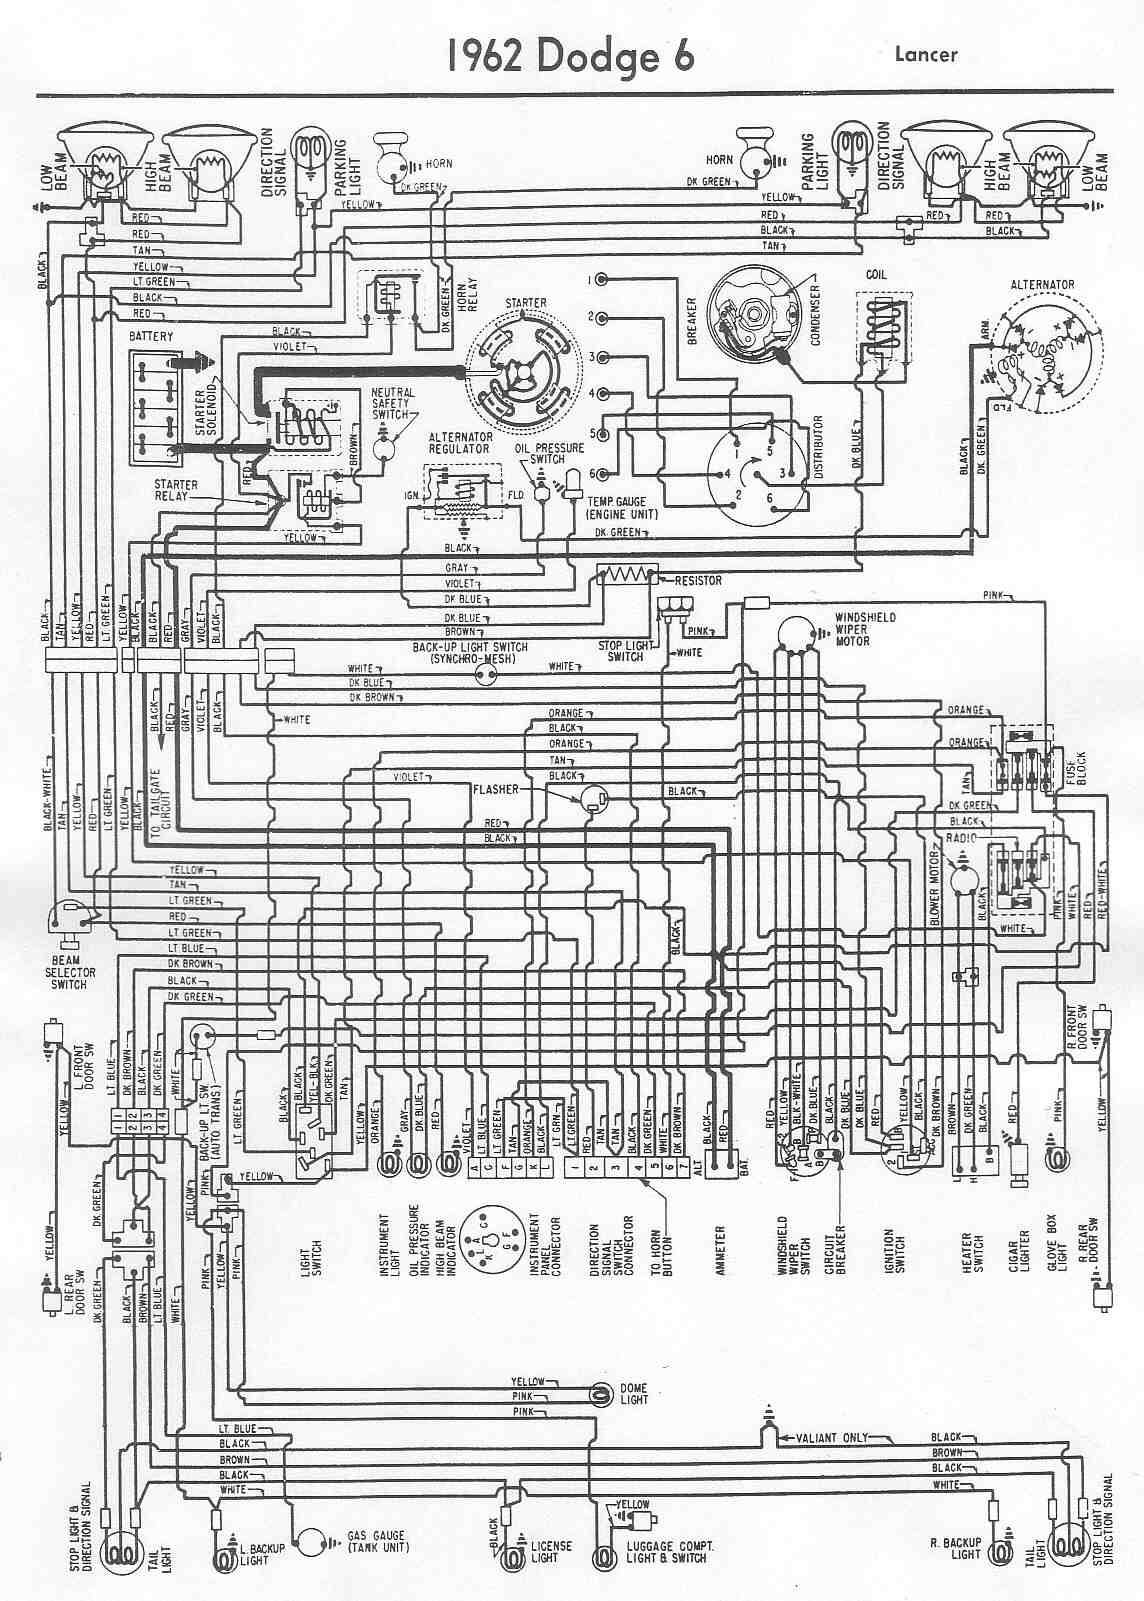 dodge meadowbrook wiring schematic wiring diagram u2022 rh cosmeticexpress co 1950 dodge wiring harness 1950 dodge wiring harness